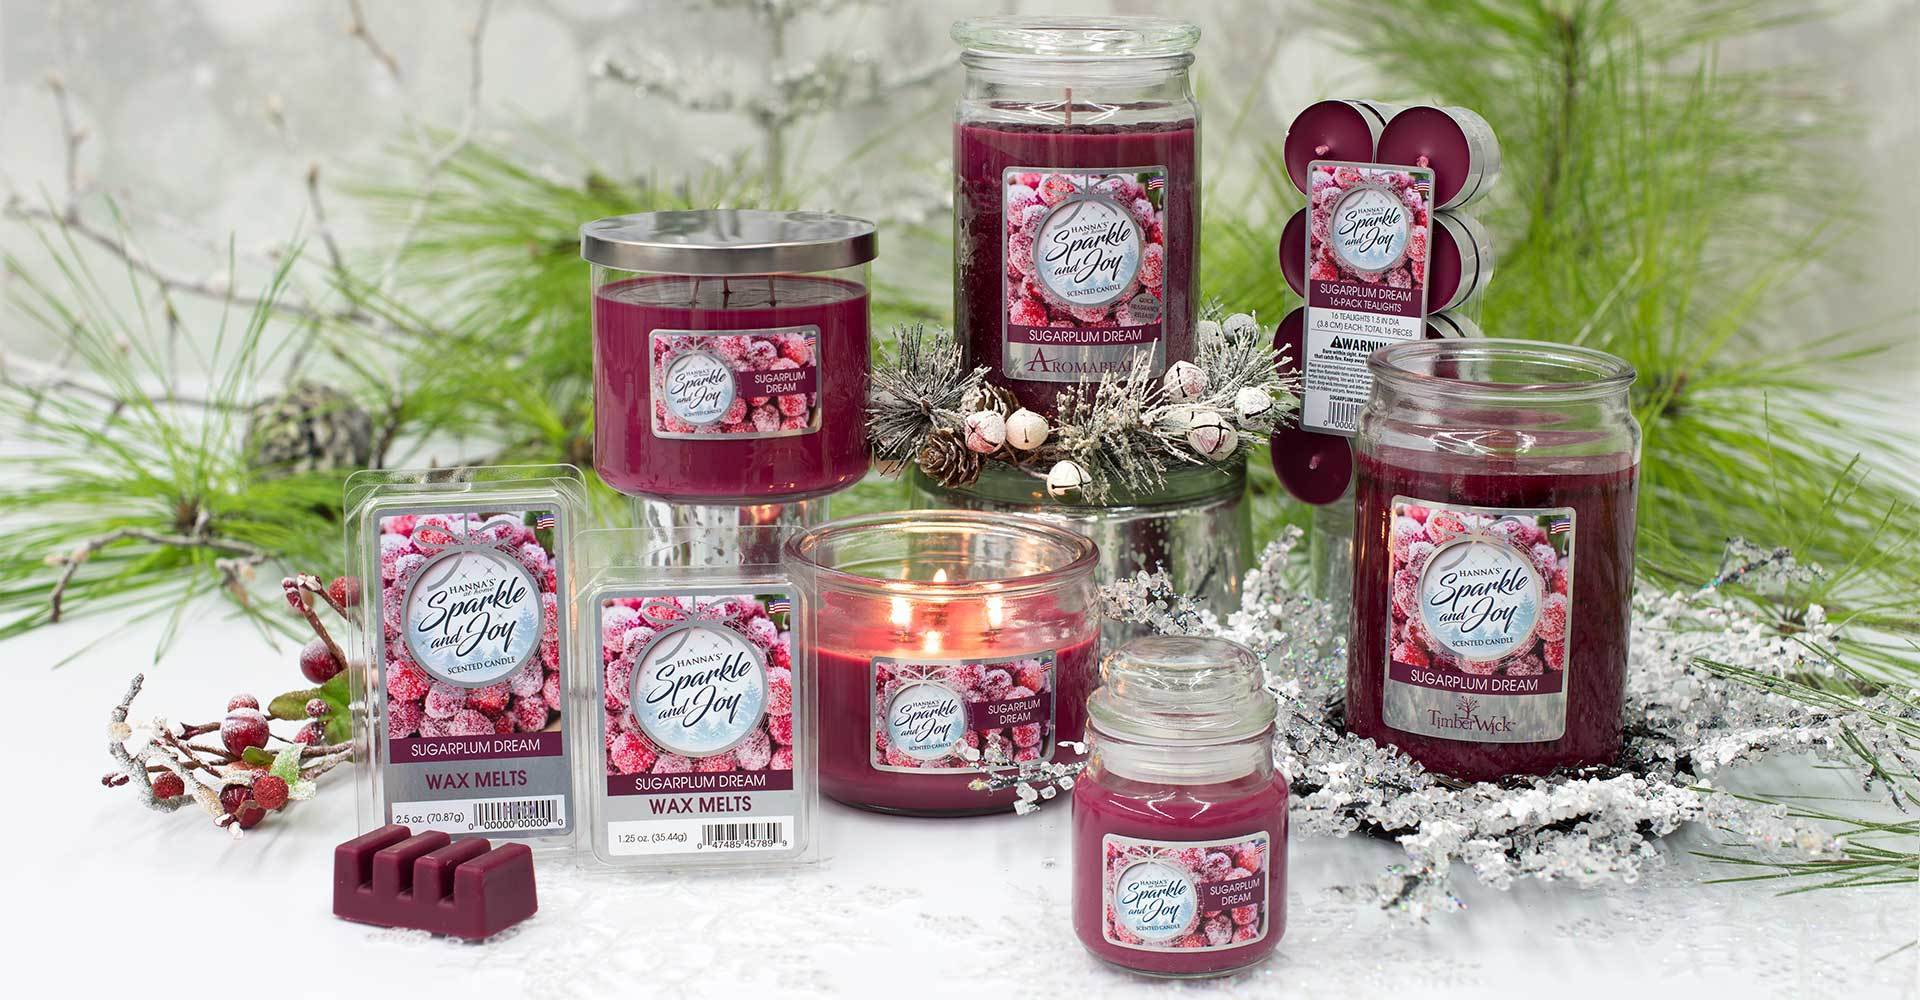 Hersheys Jolly Rancher candy scented candles